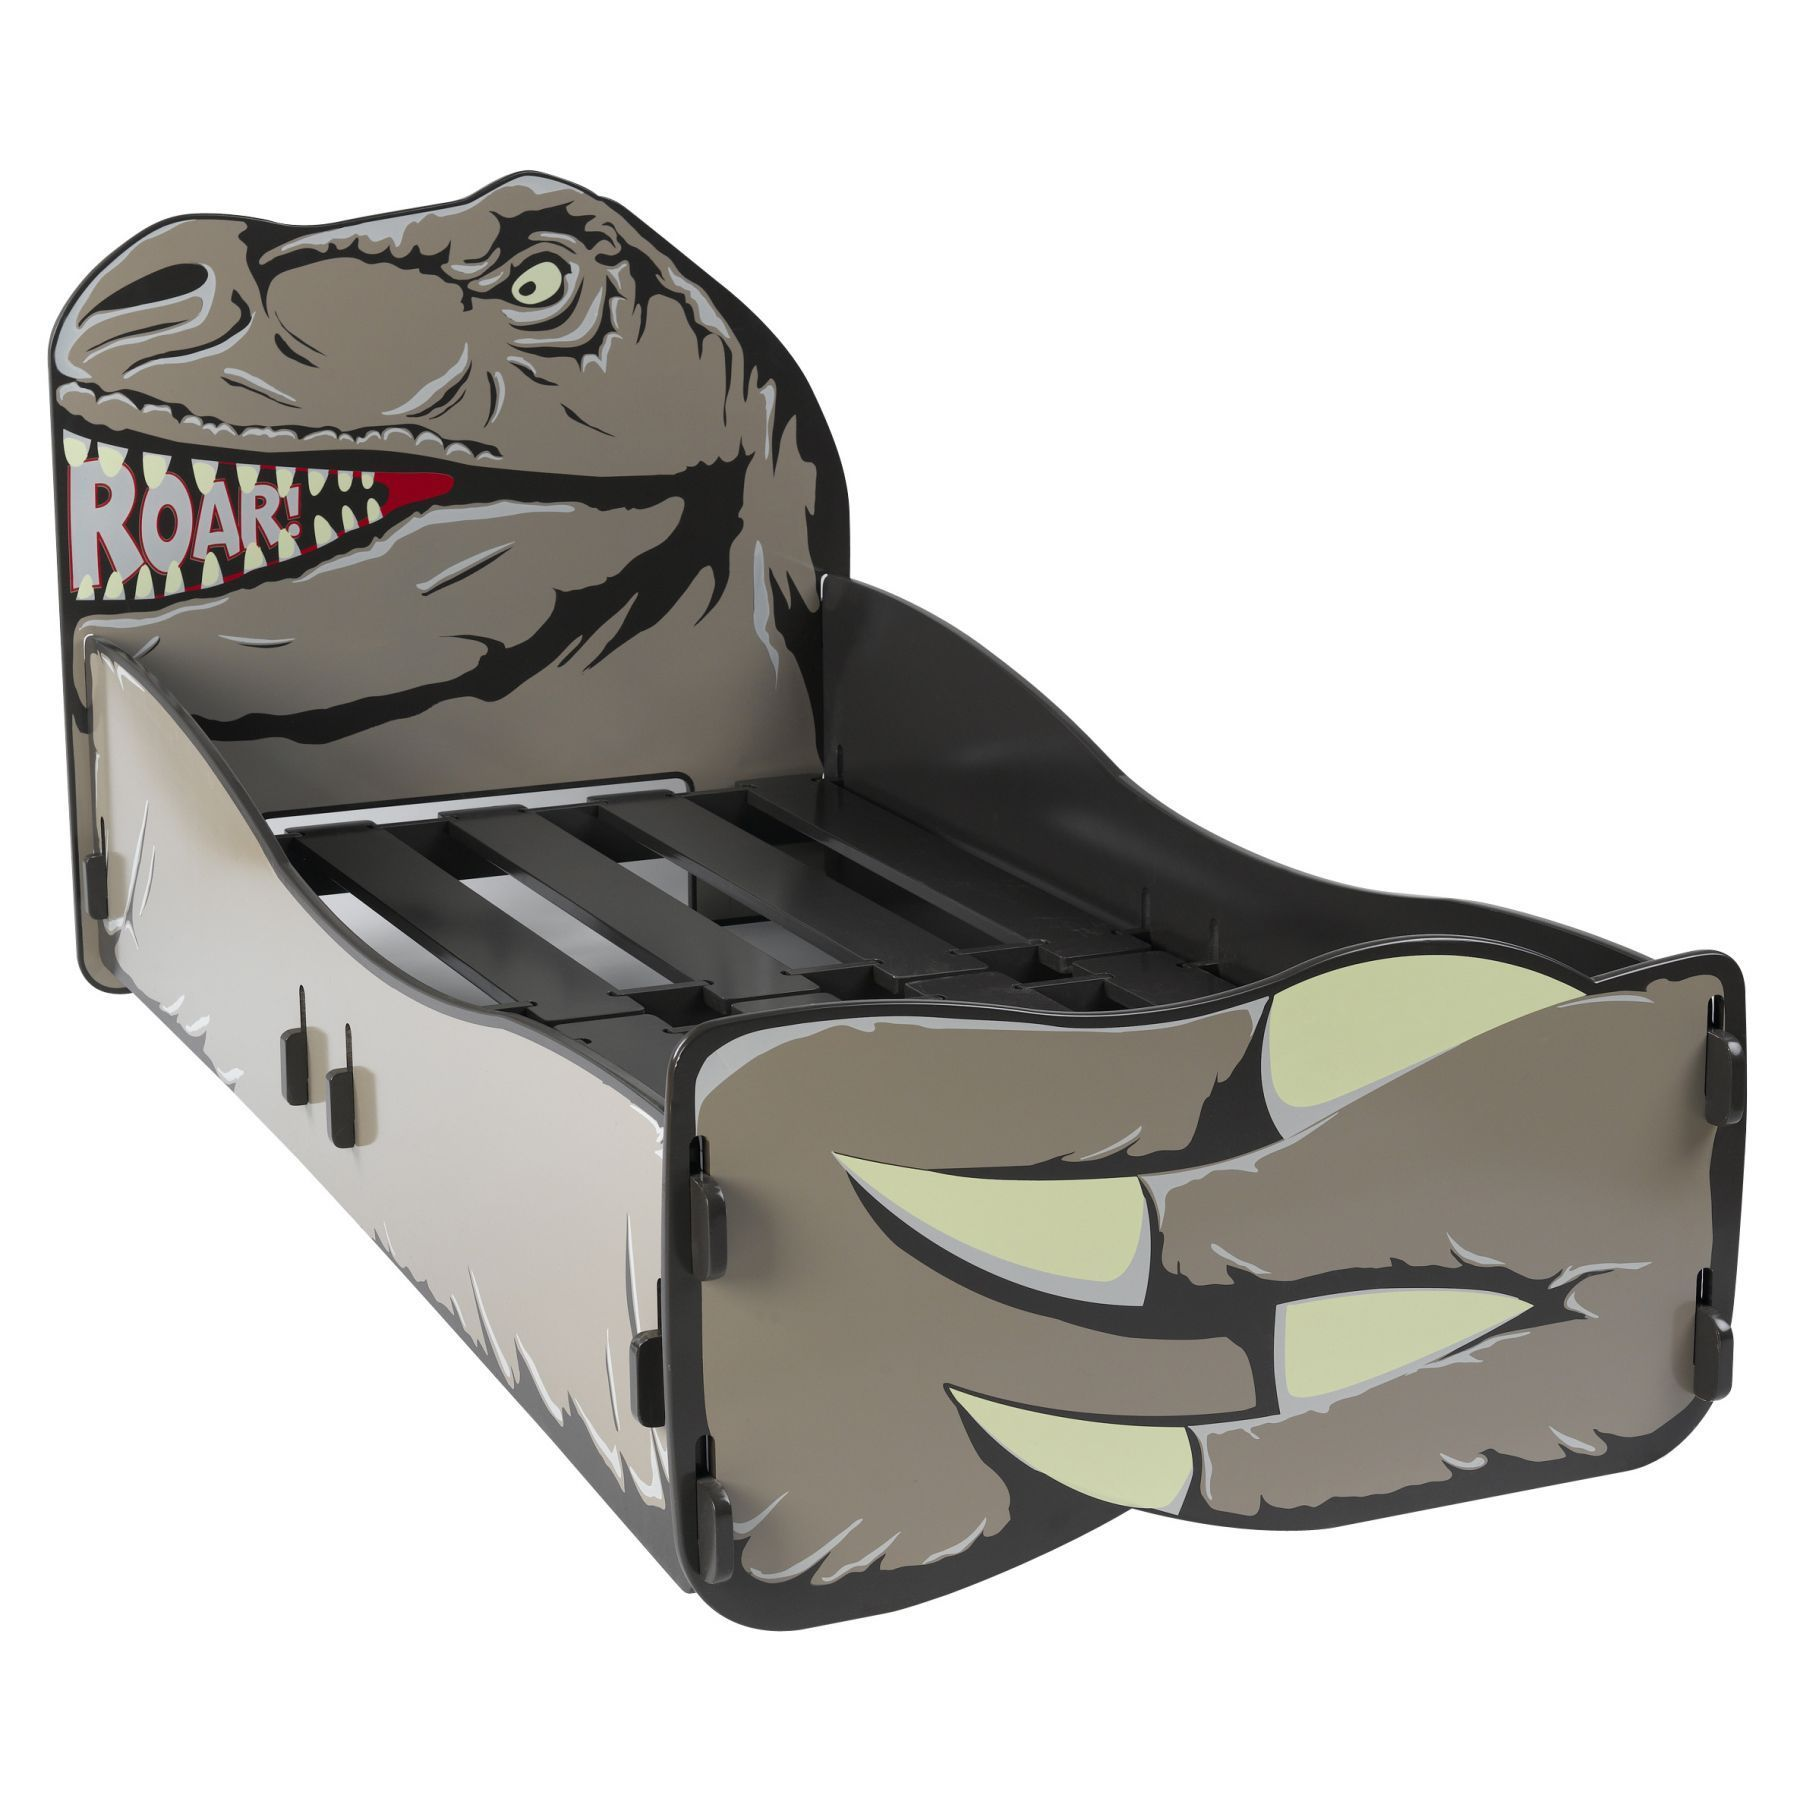 Boys beds home childrens furniture boys furniture for Dinosaur bedroom ideas boys